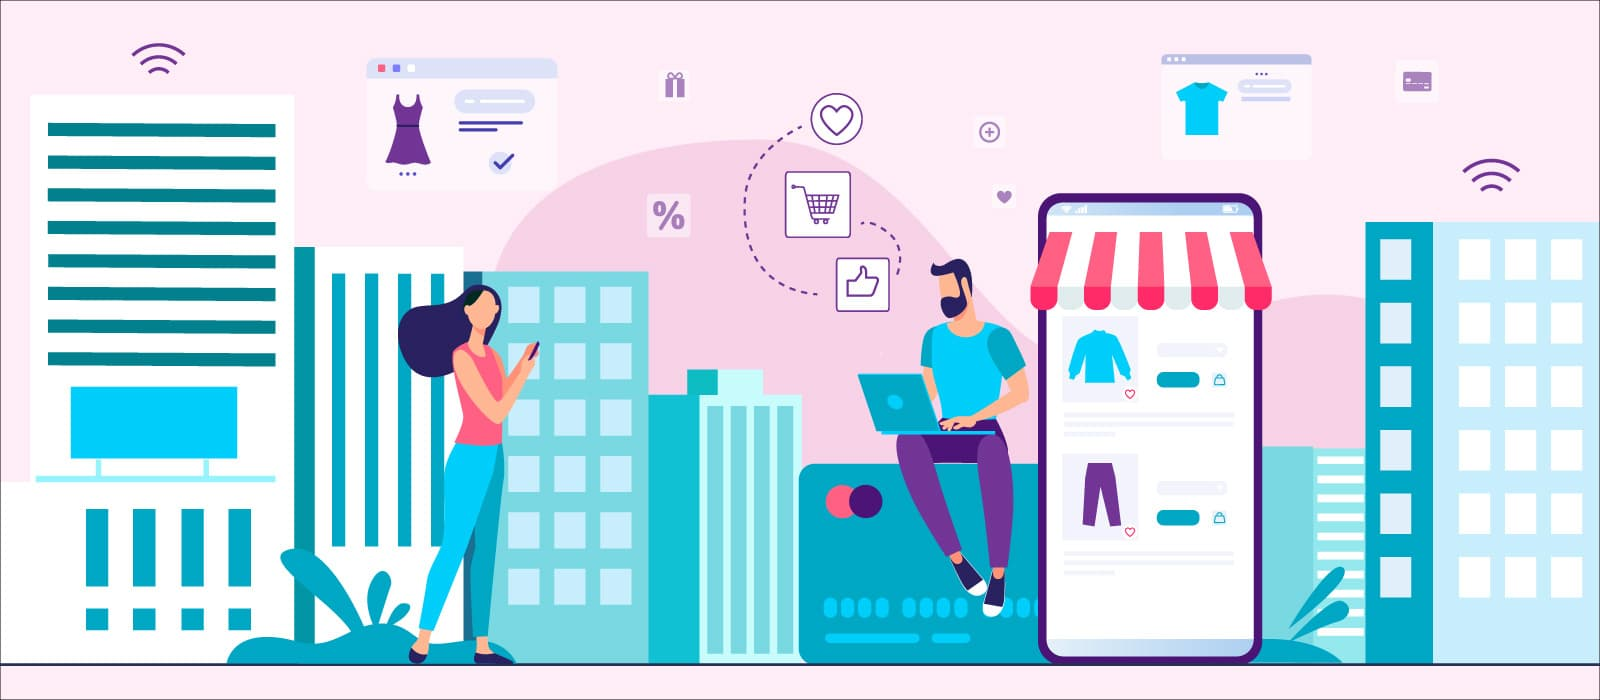 Two people shopping online next to web marketplace interfaces